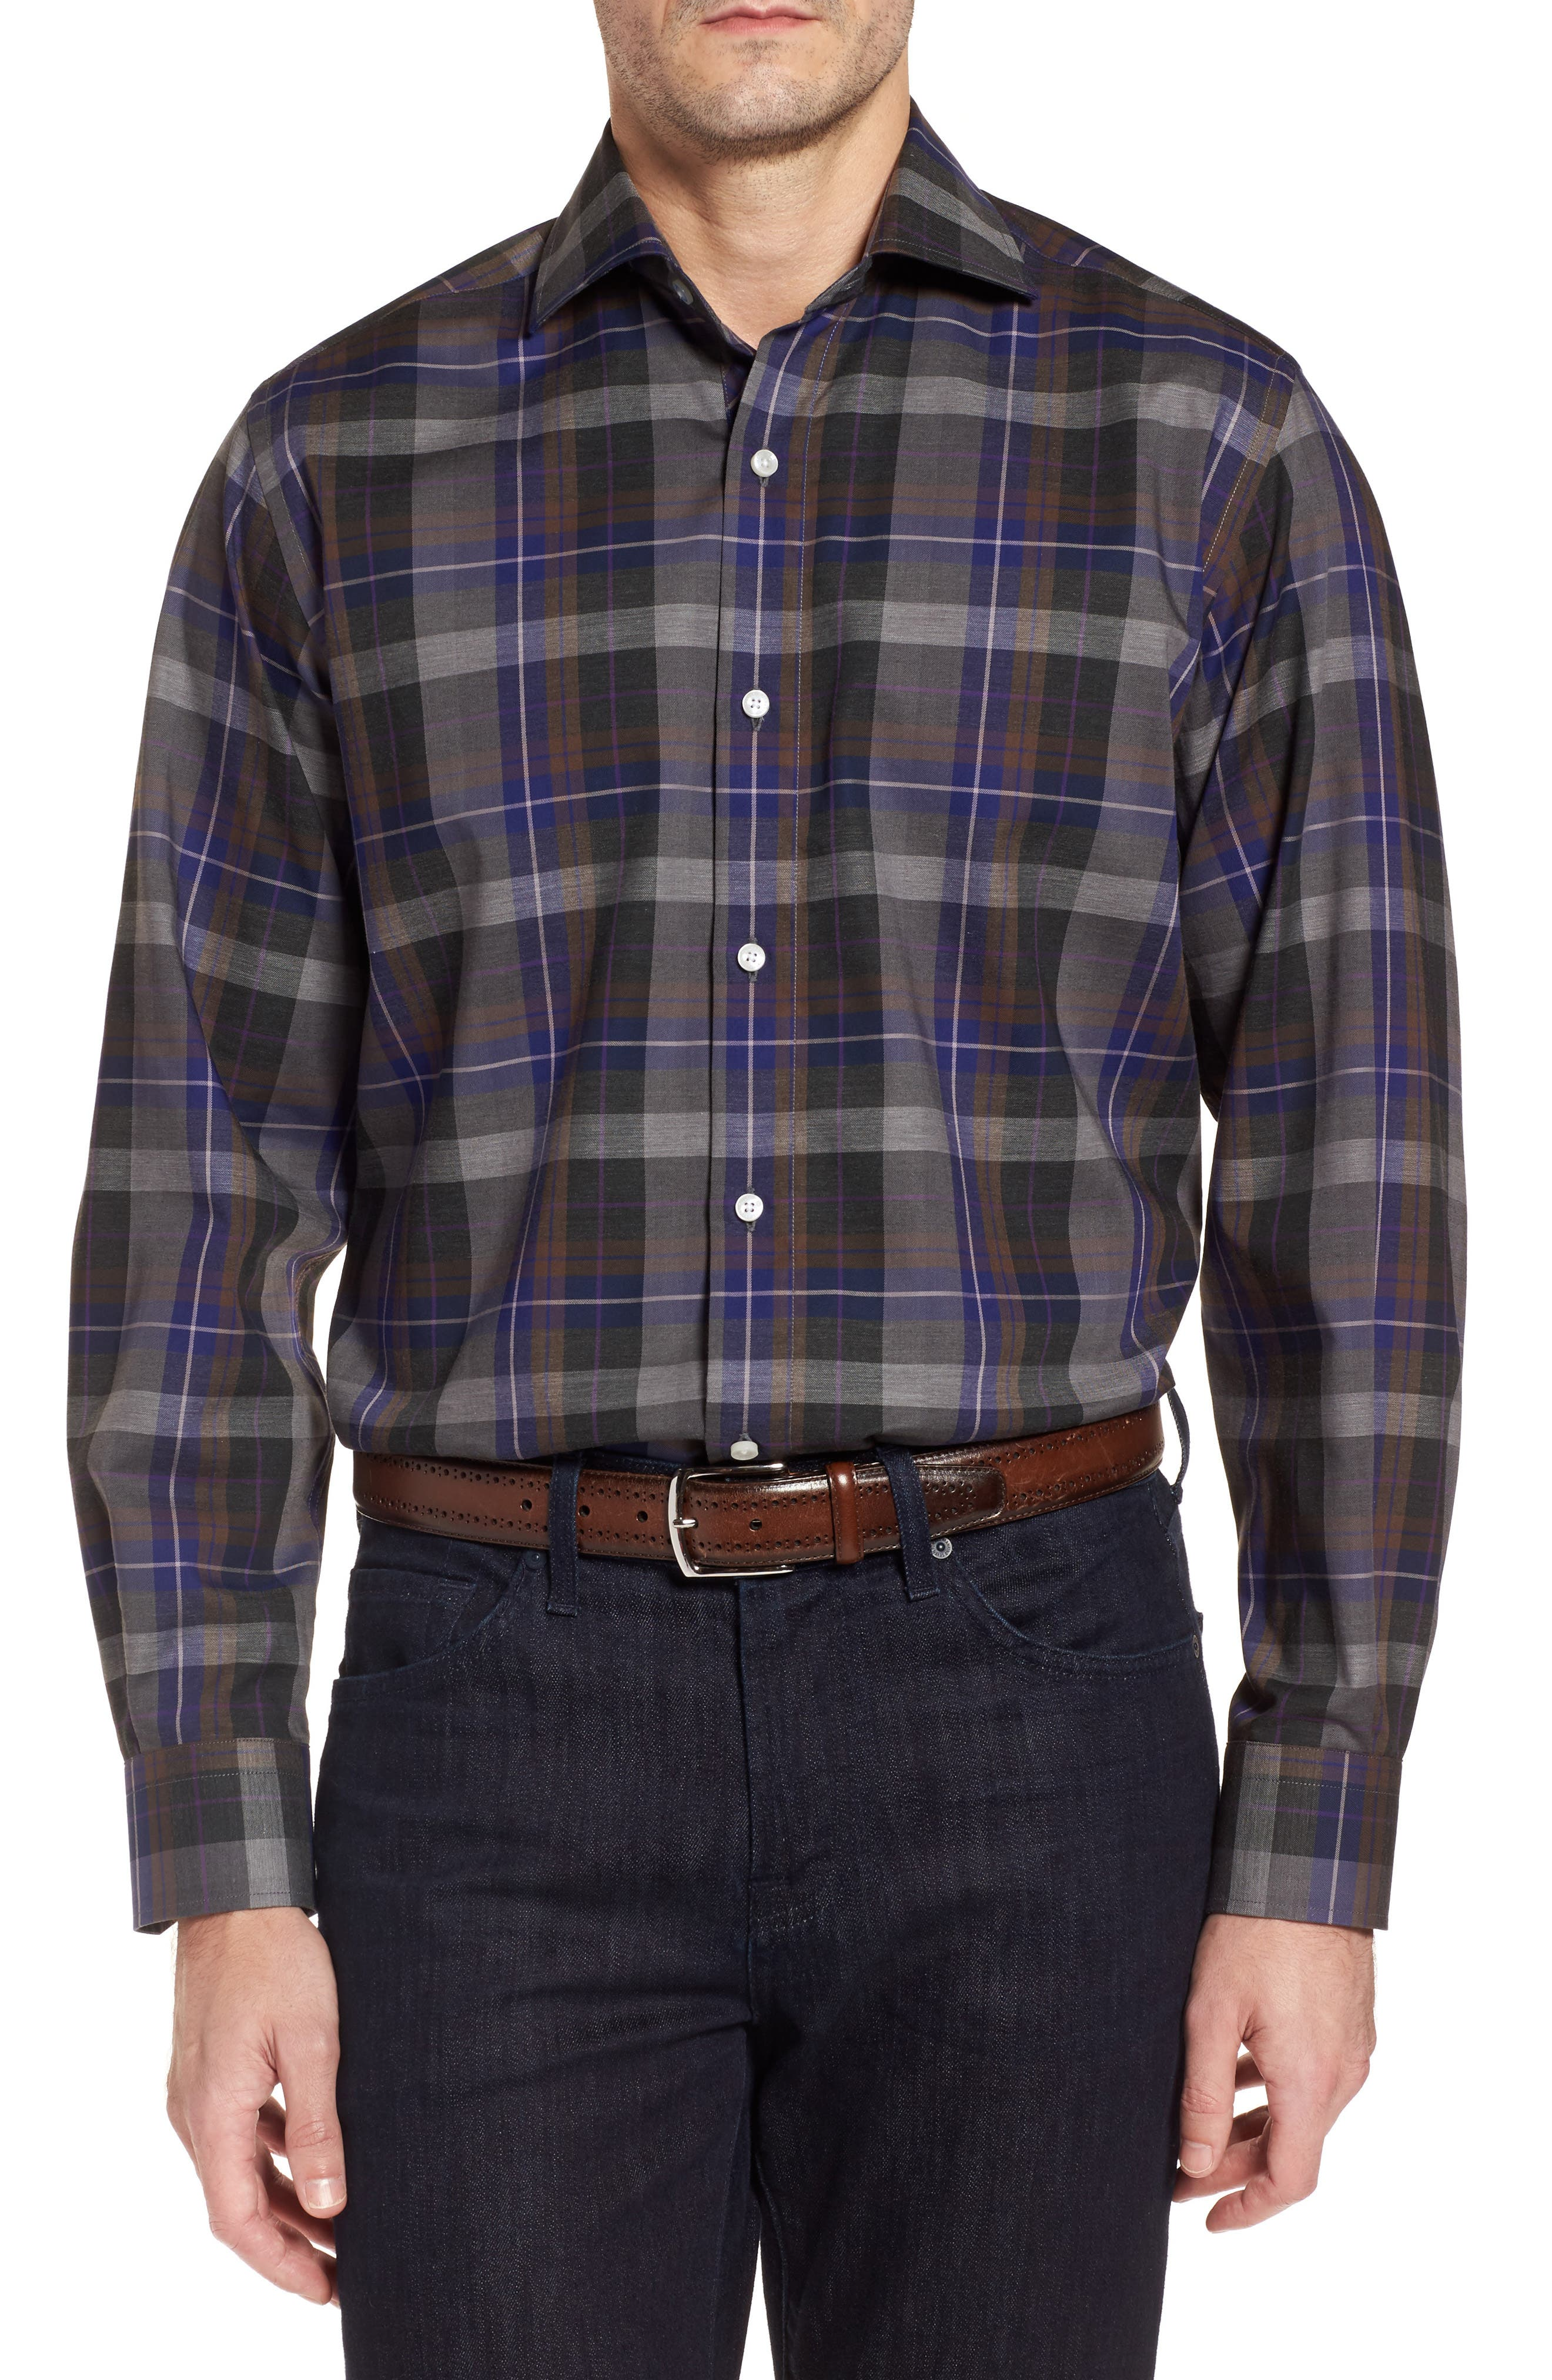 Cullen Plaid Twill Sport Shirt,                             Main thumbnail 1, color,                             Blue